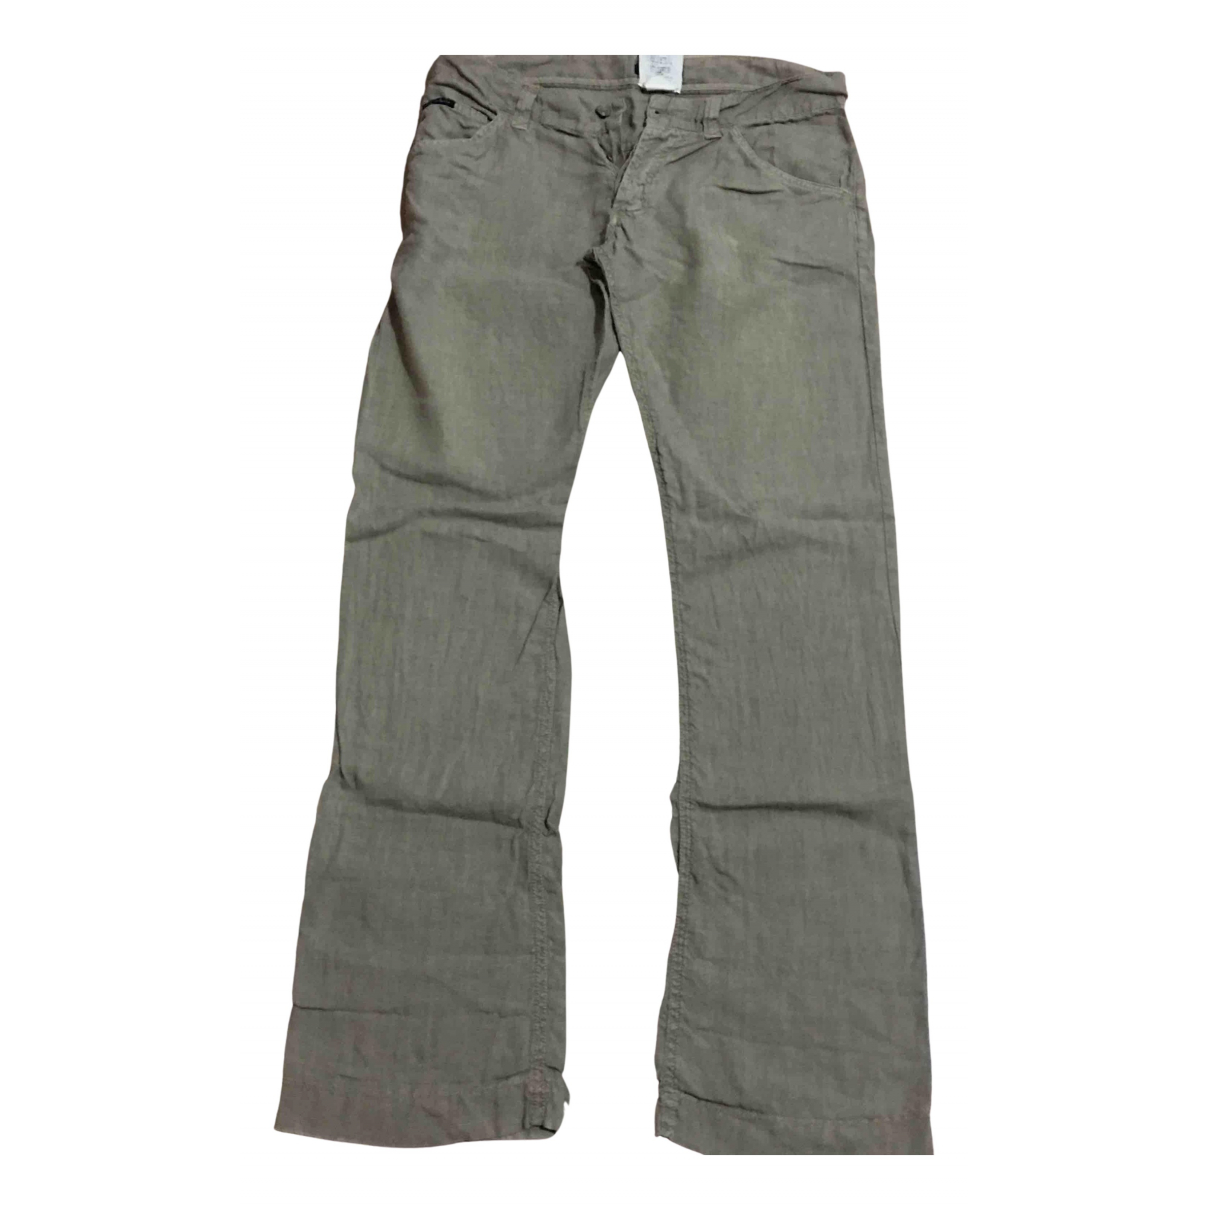 Dolce & Gabbana N Ecru Linen Trousers for Men 46 IT